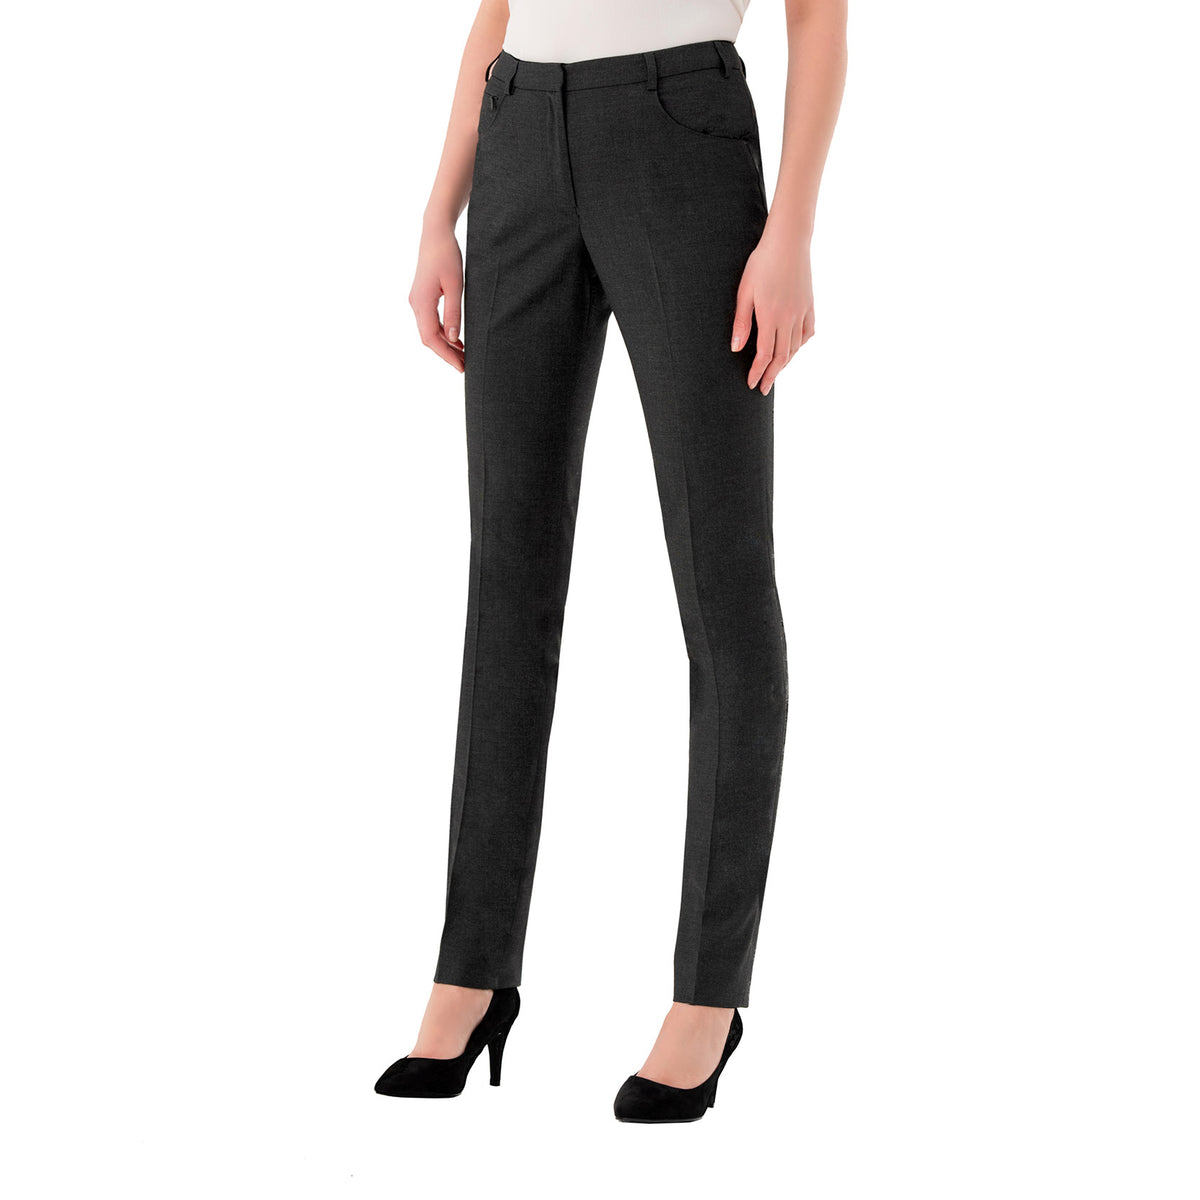 Chiswick Ladies Trousers Charcoal